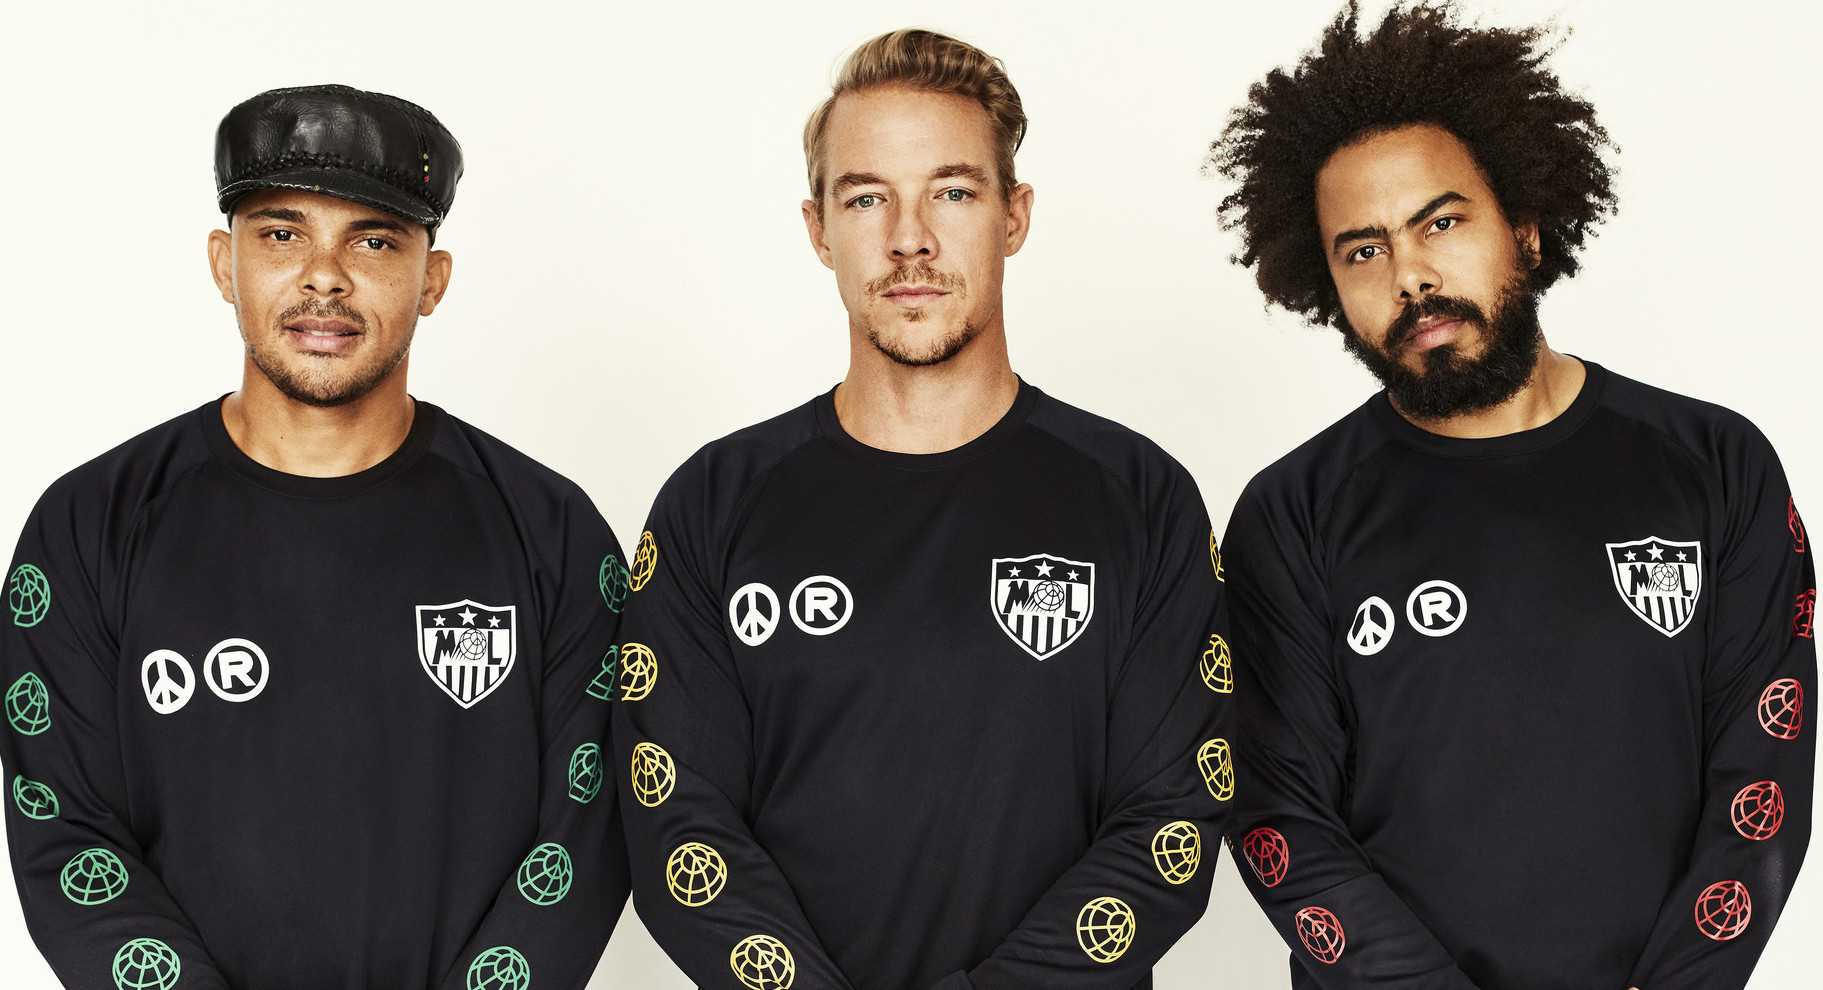 Major Lazer Members